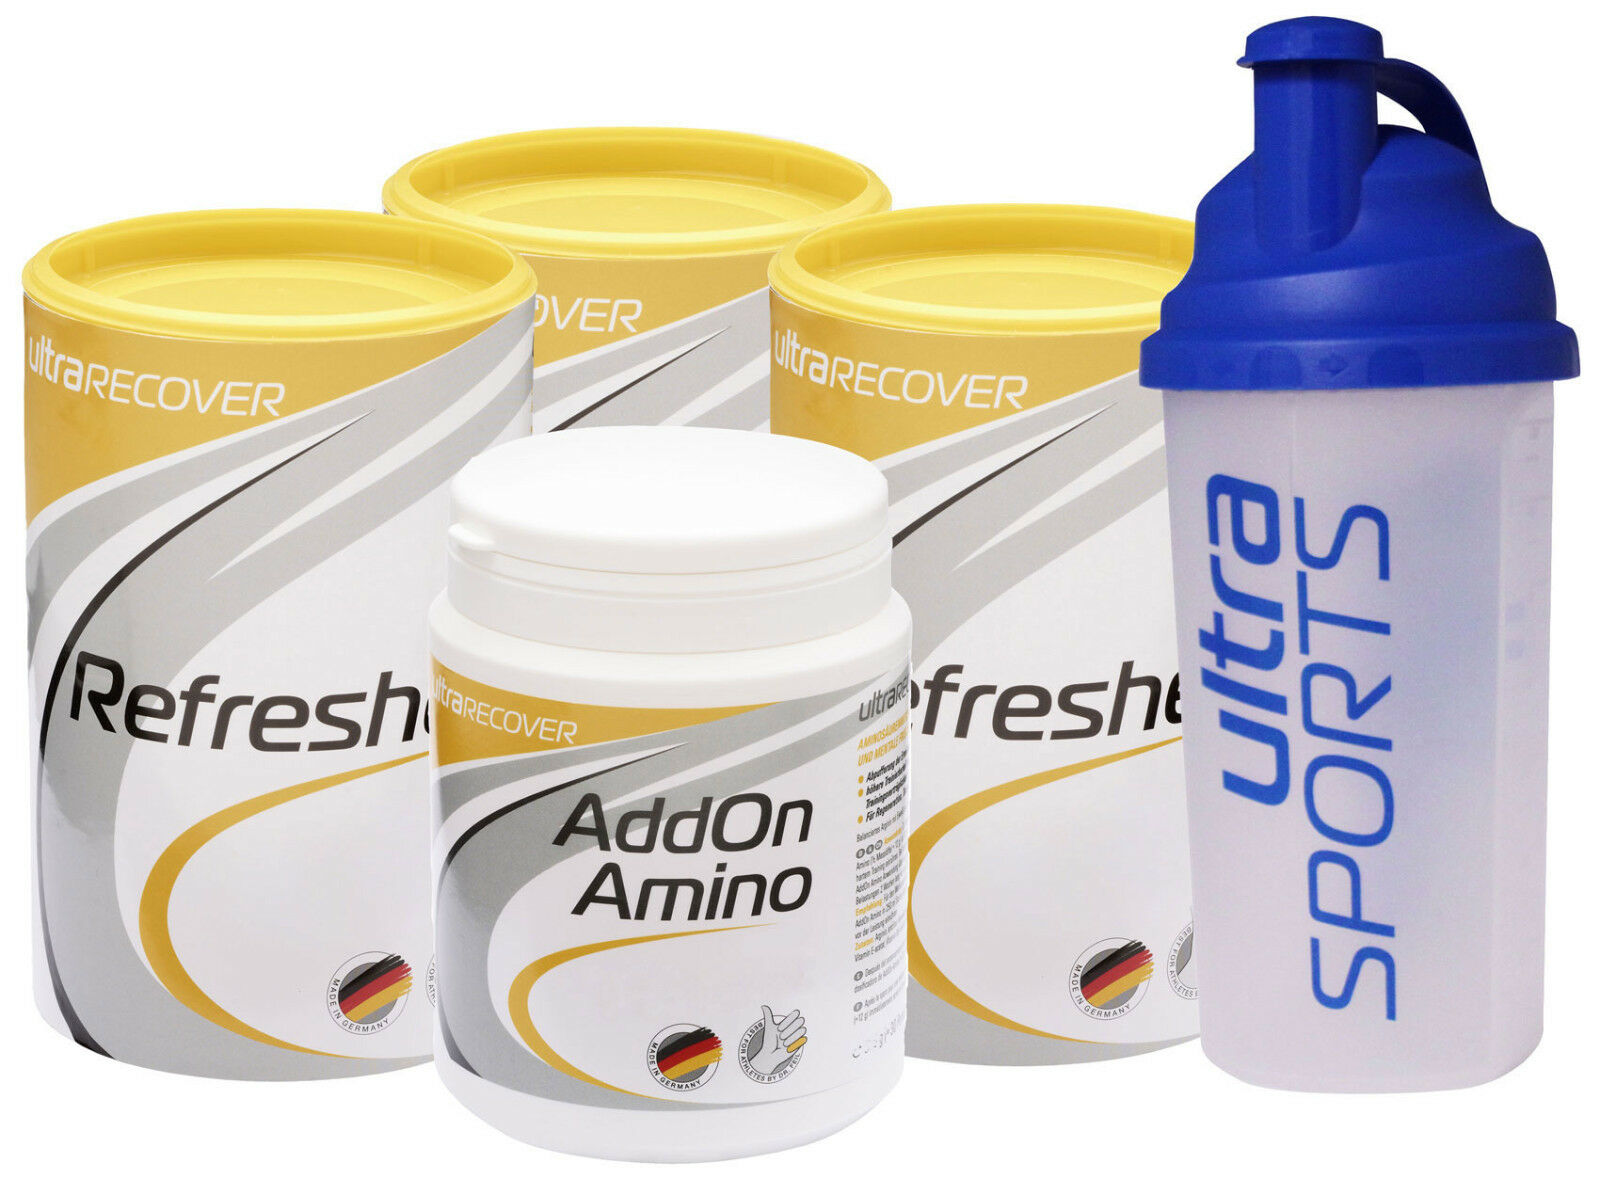 Ultra Sports 310g Refresher 3x500g & AddOn Amino 310g Sports + Mix Shaker ea4b2a